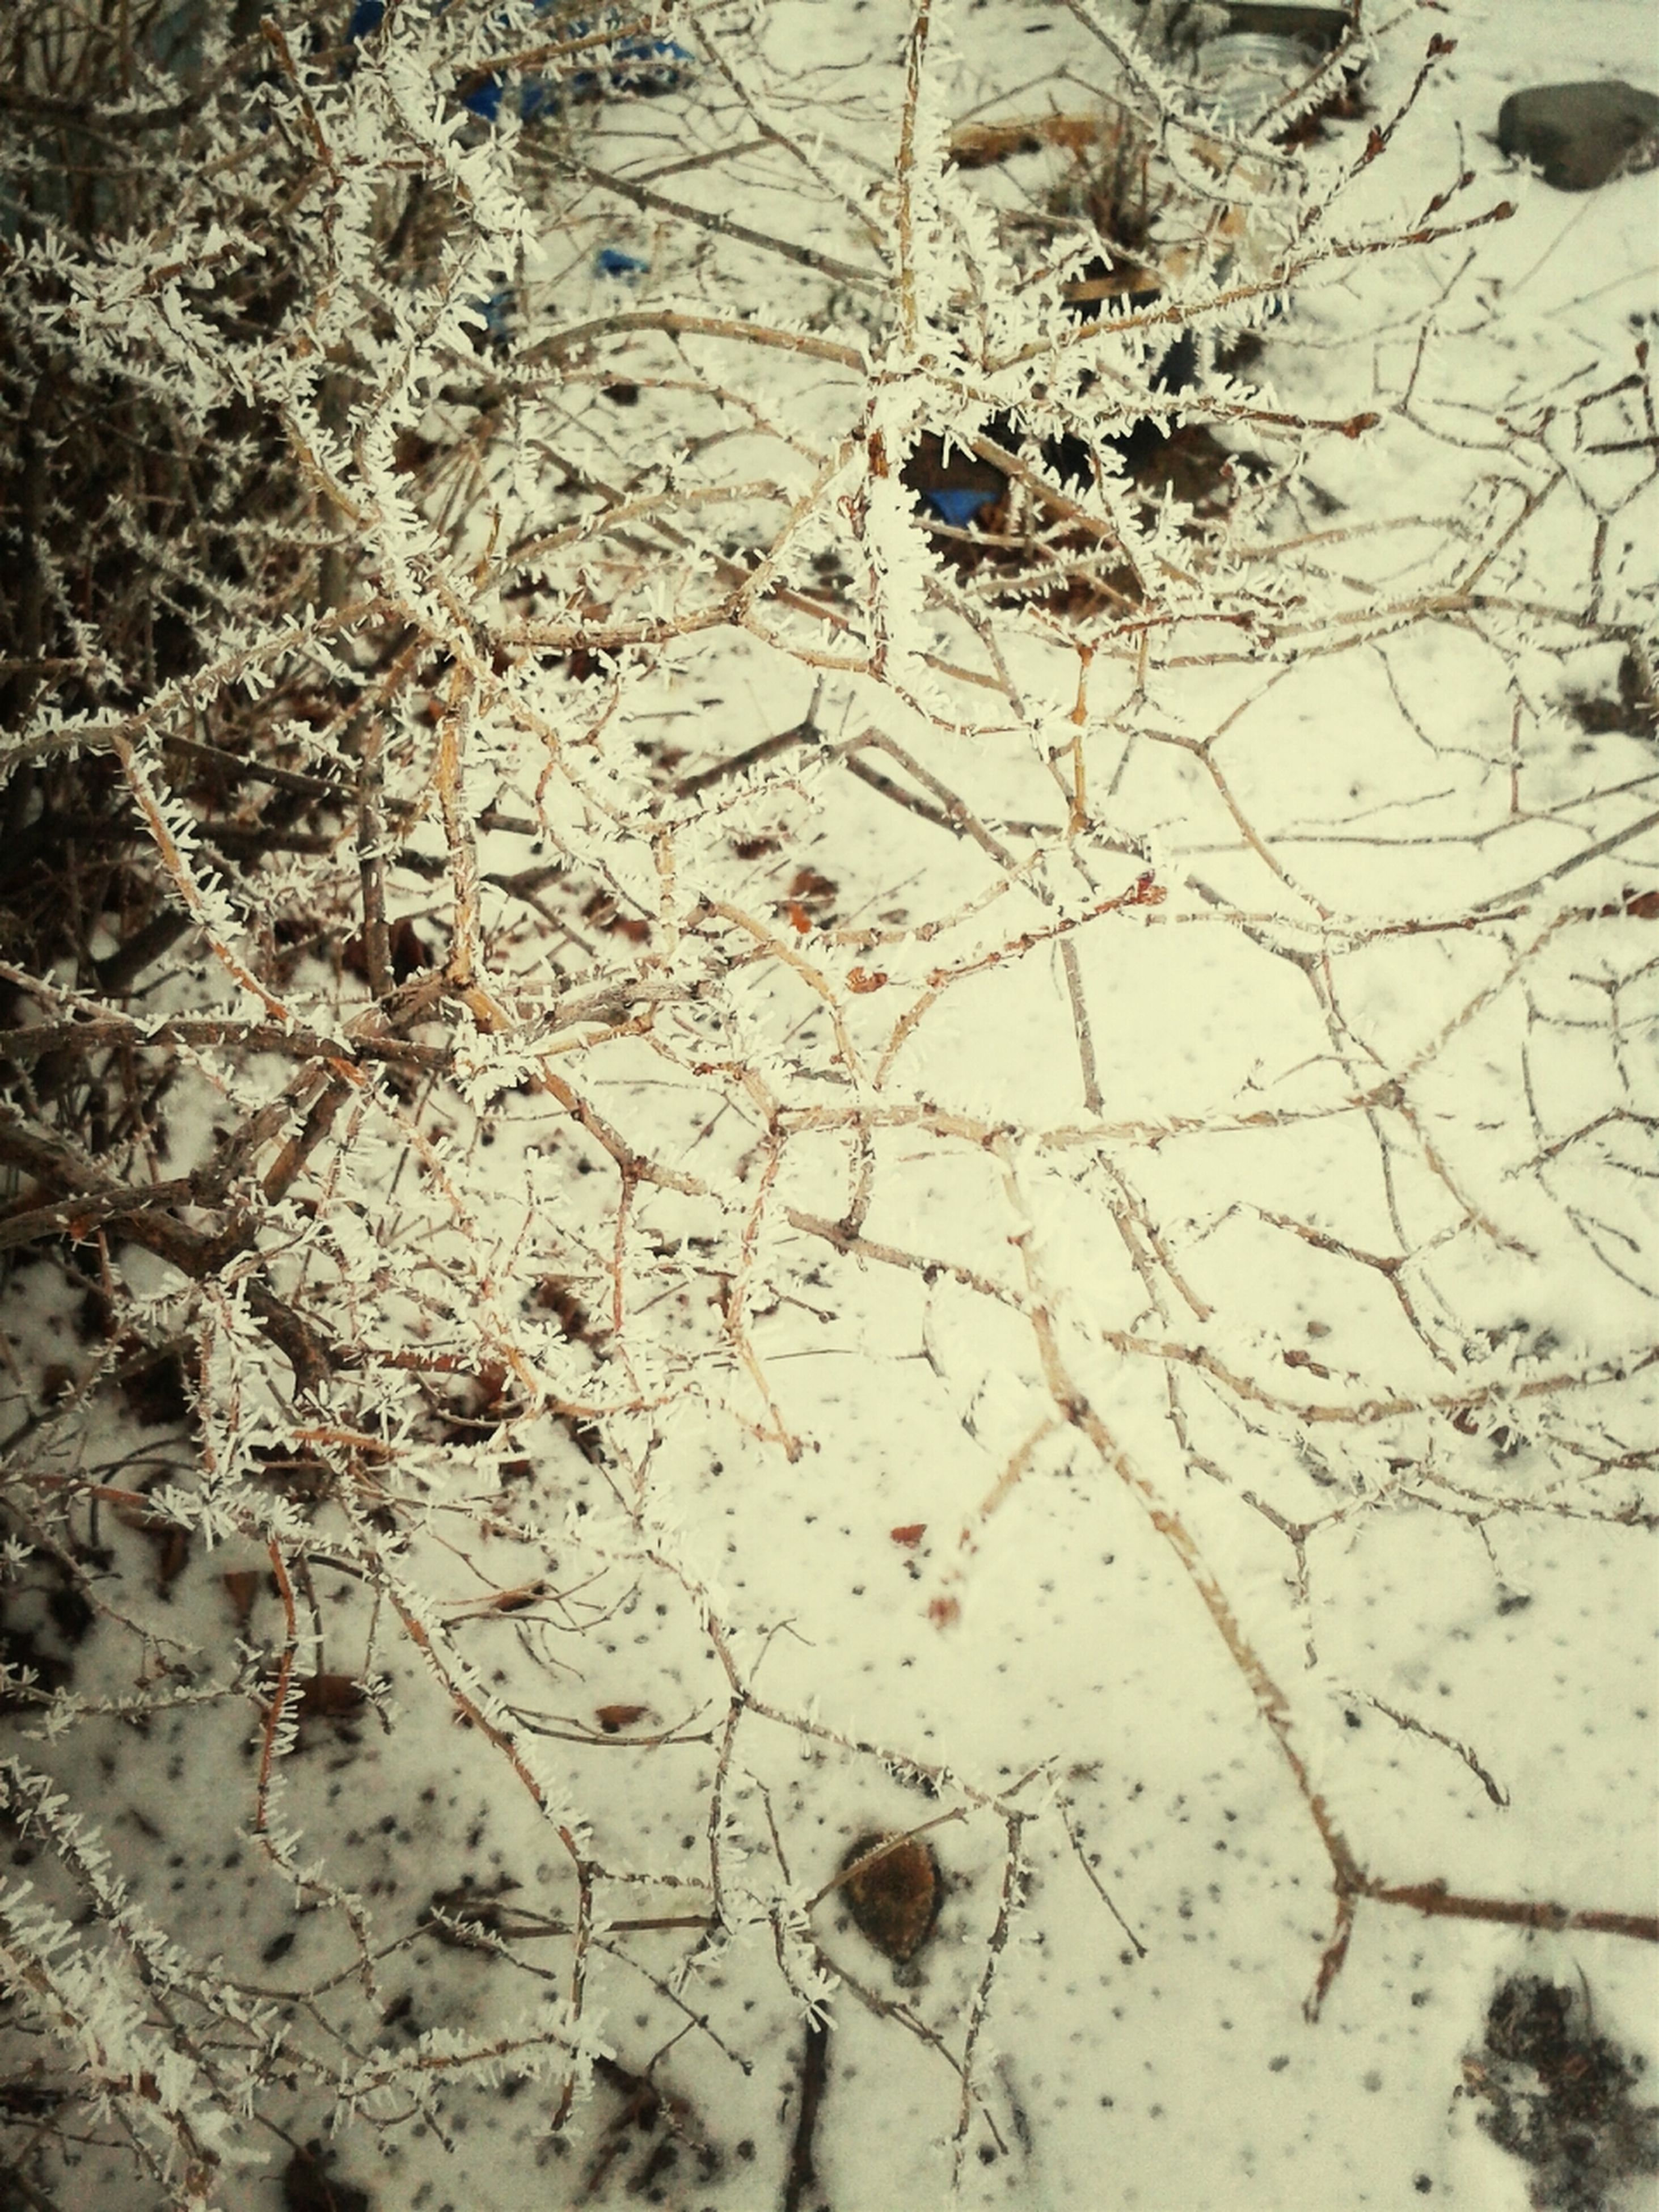 high angle view, full frame, nature, dry, day, backgrounds, outdoors, textured, no people, ground, pattern, sand, tree, leaf, animal themes, dirt, cracked, tranquility, messy, field